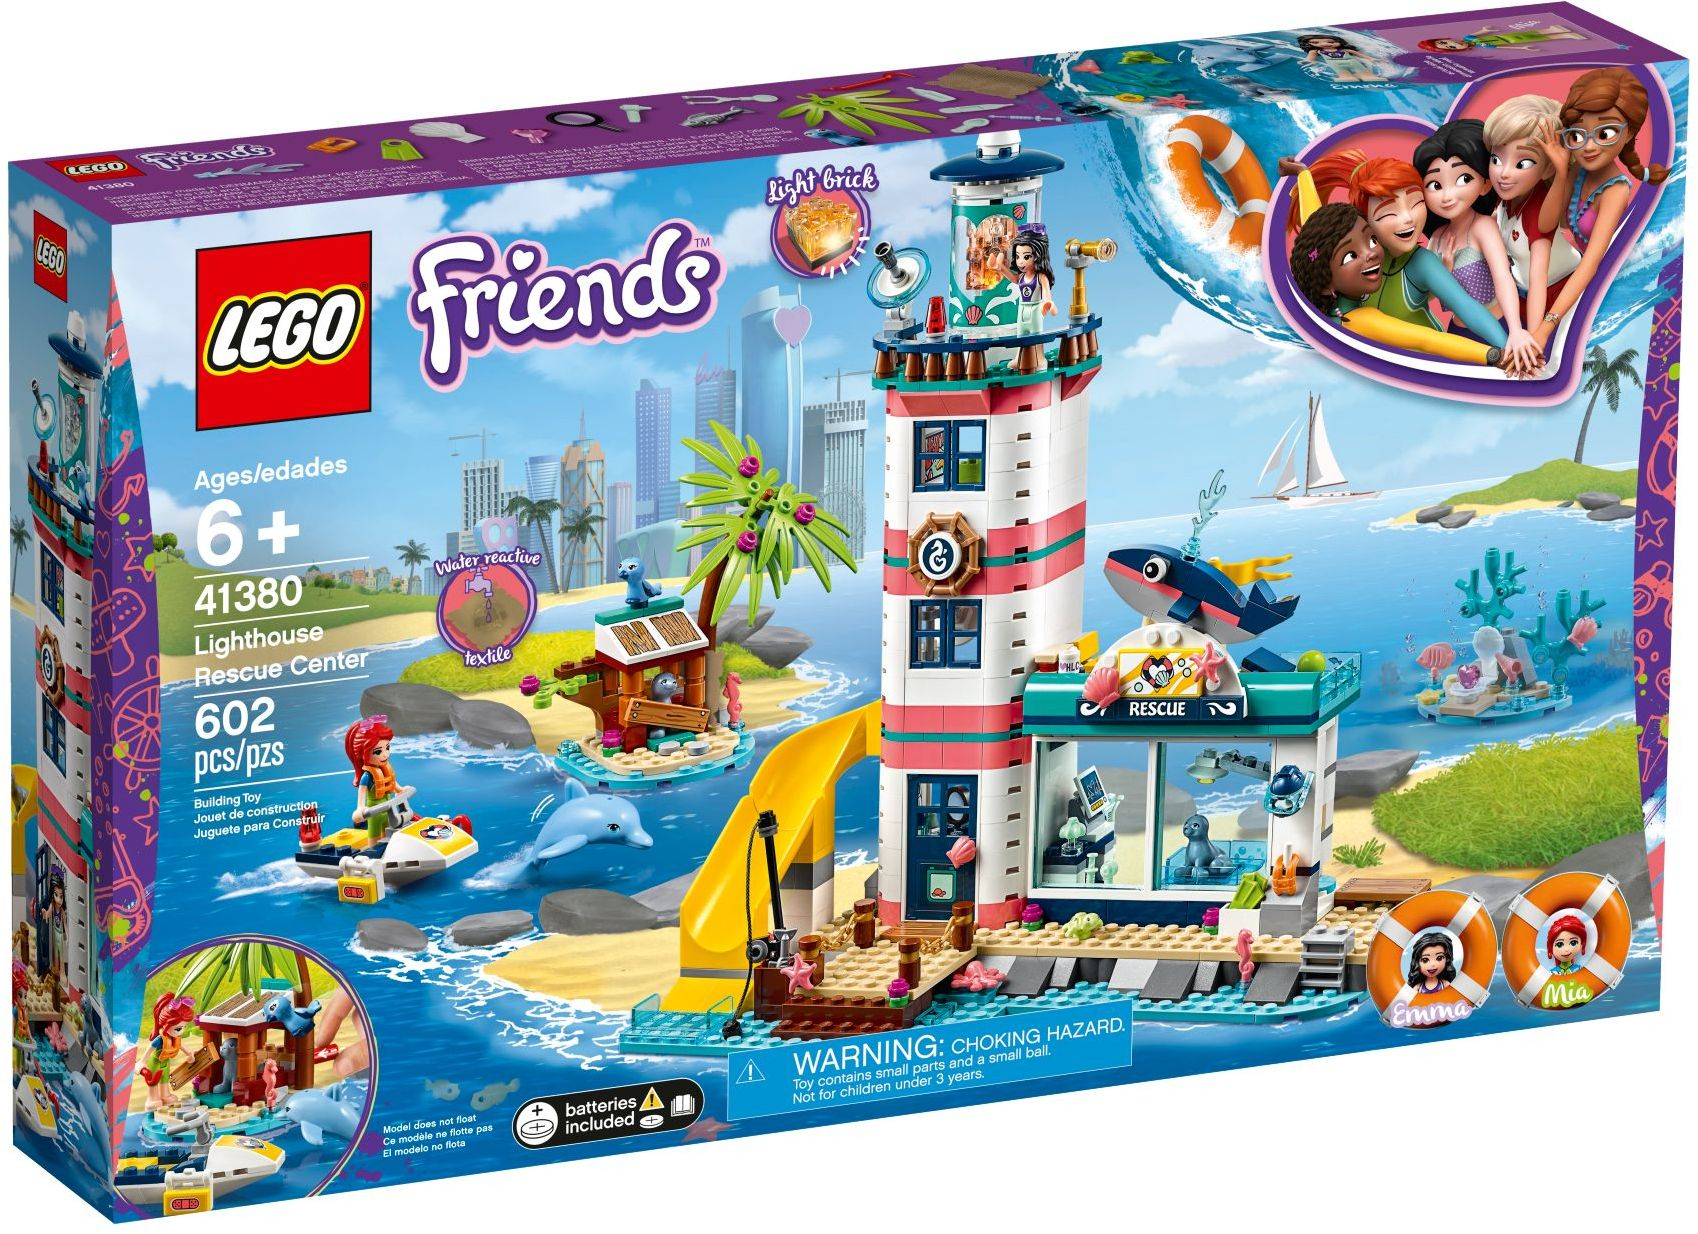 Lighthouse Rescue Center (41380) | LEGO Friends Wiki